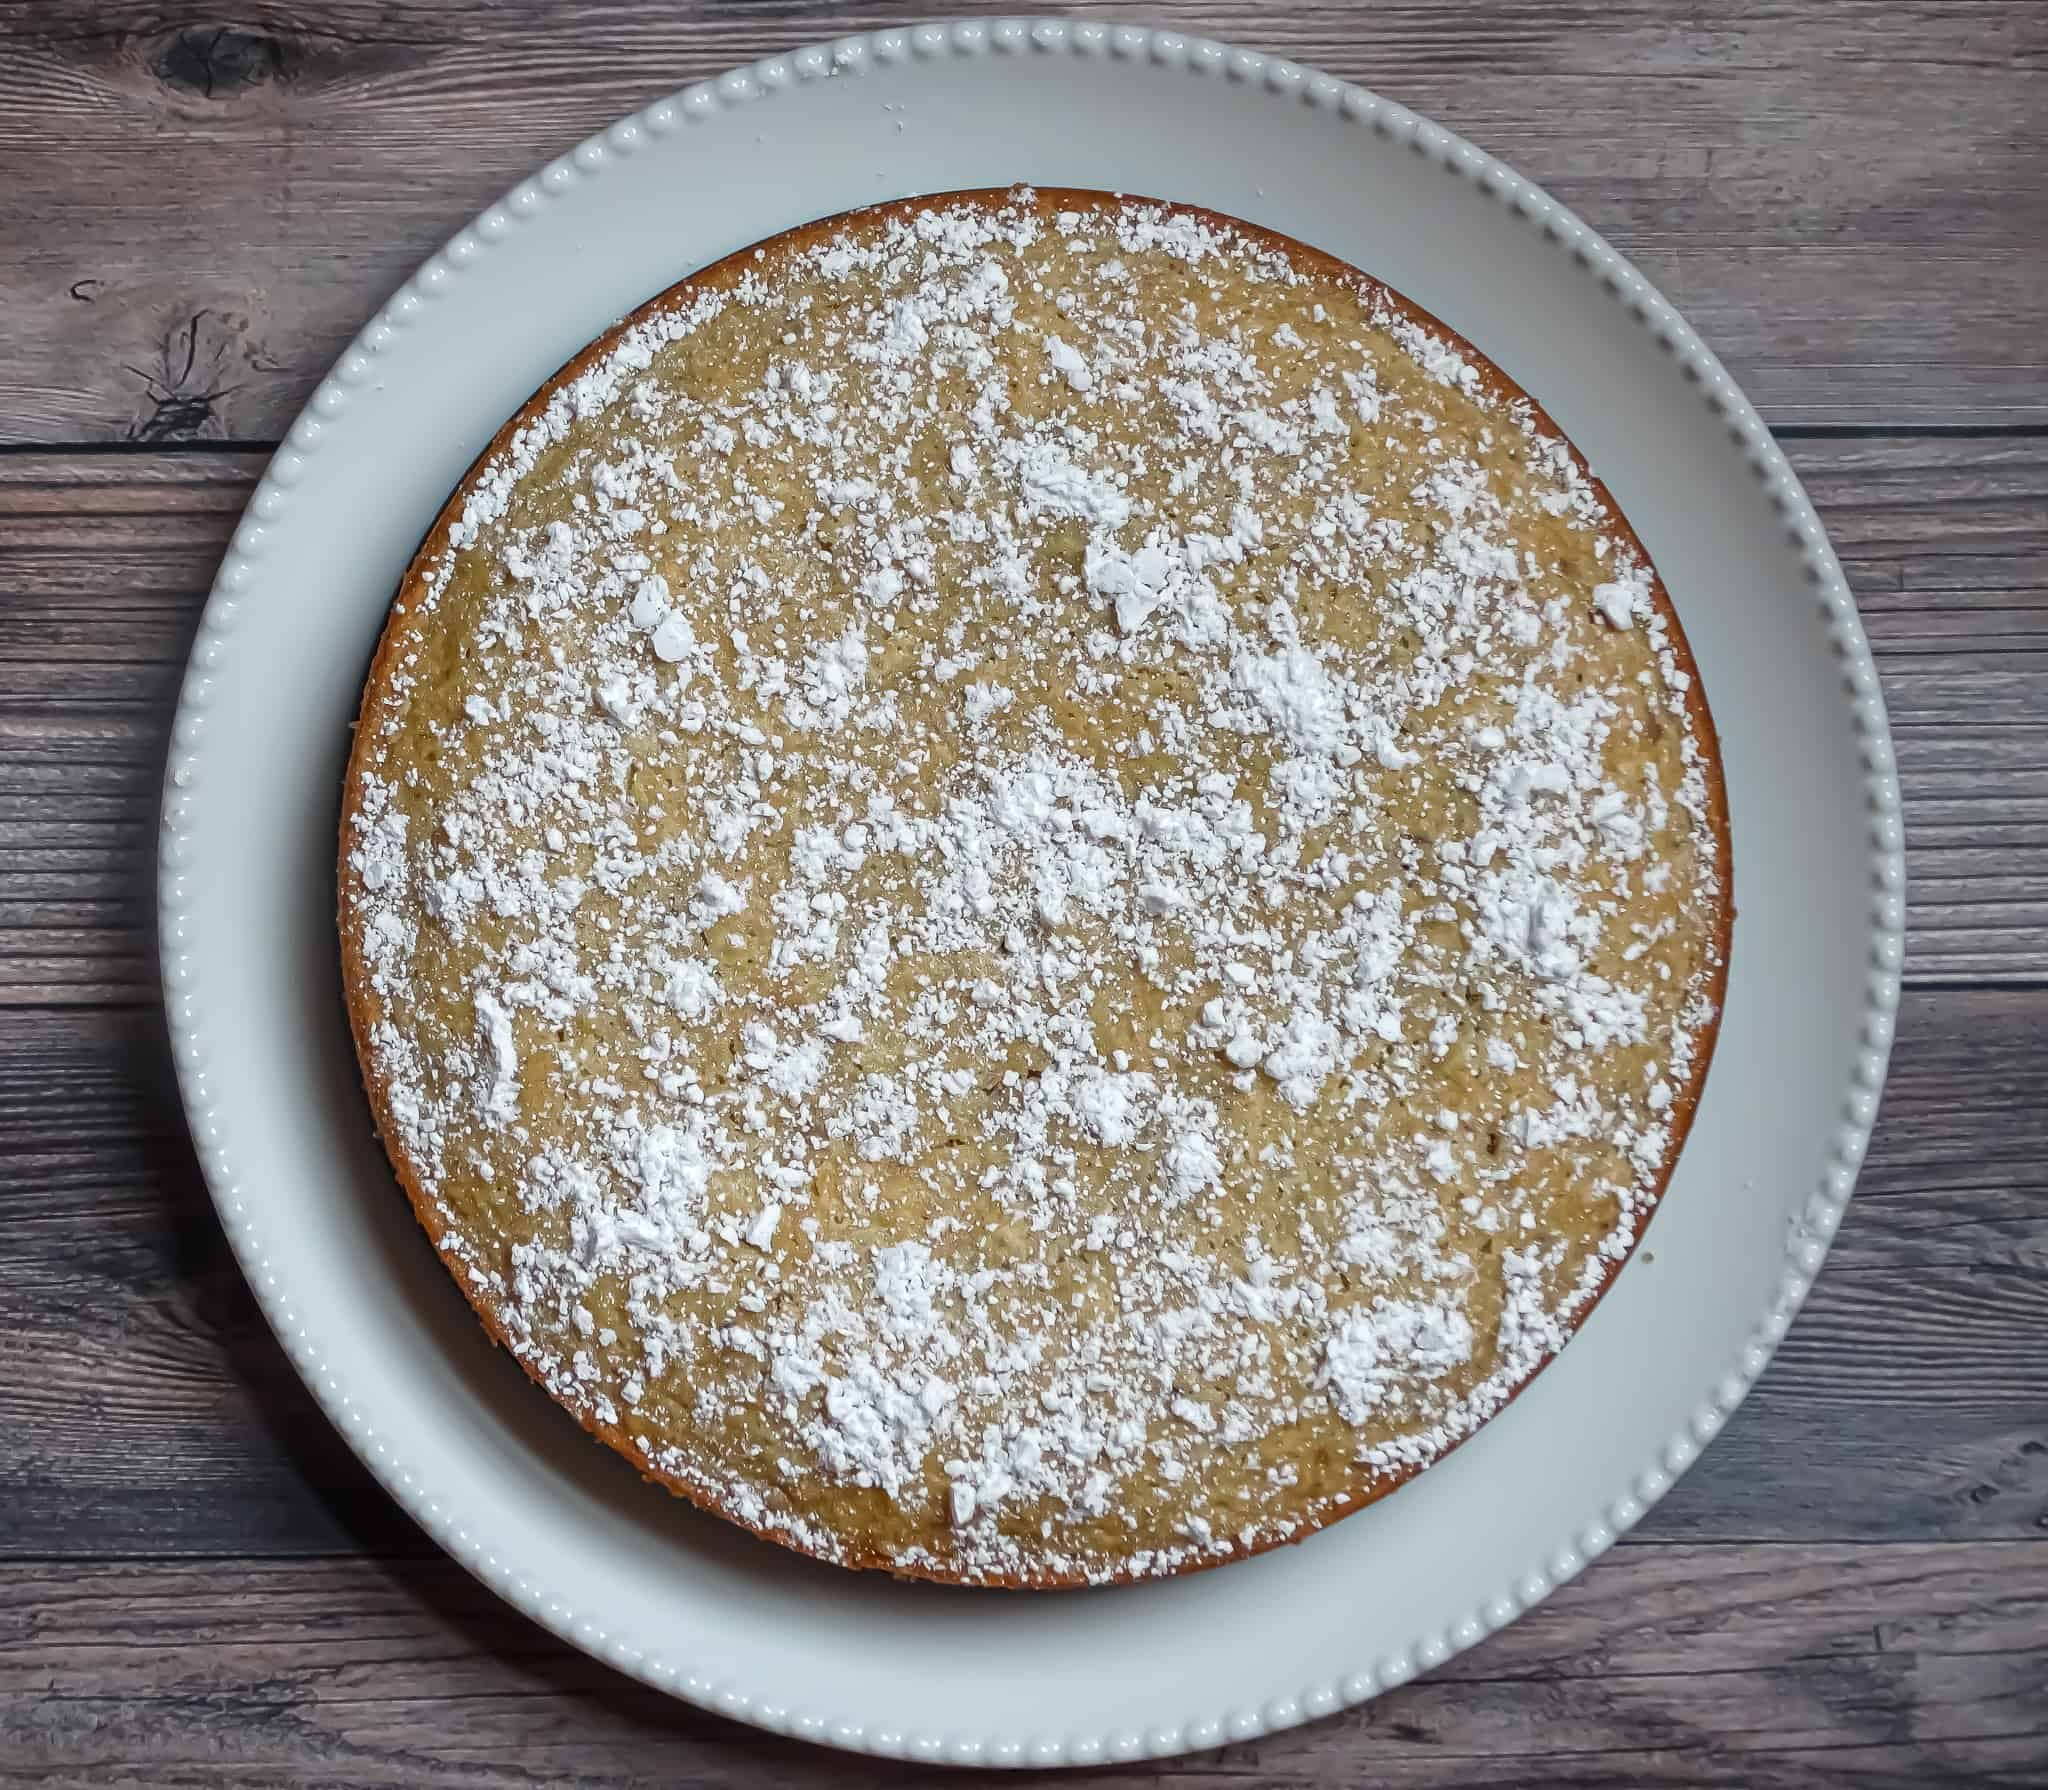 olive oil cake recipe sprinkled with powdered sugar on a white plate